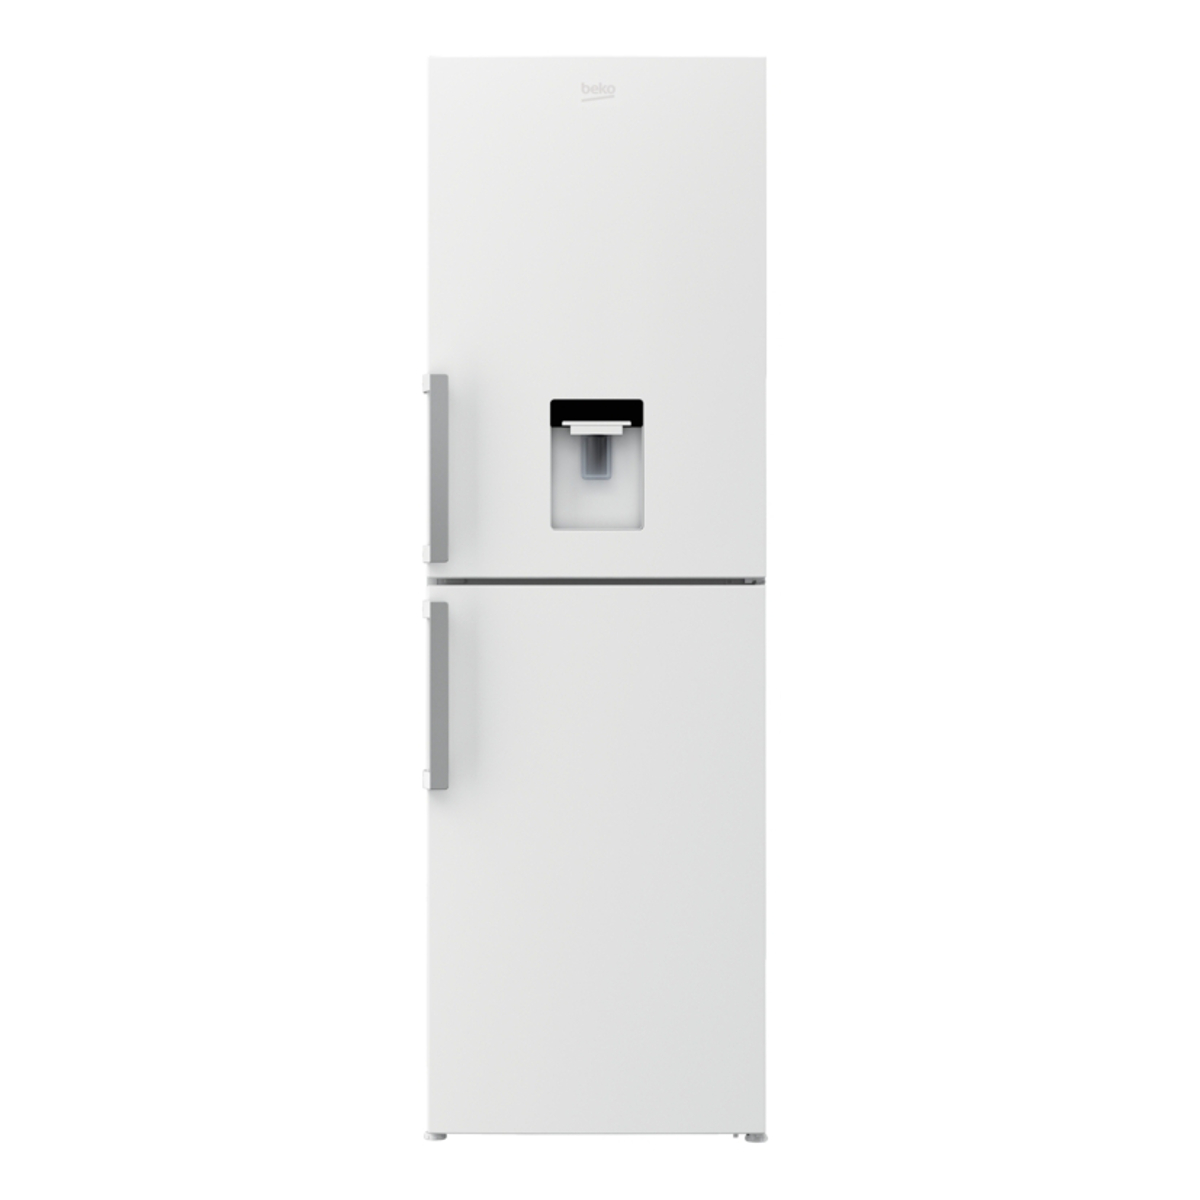 Beko Cfp1691dw Fridge Freezer With Water Dispenser